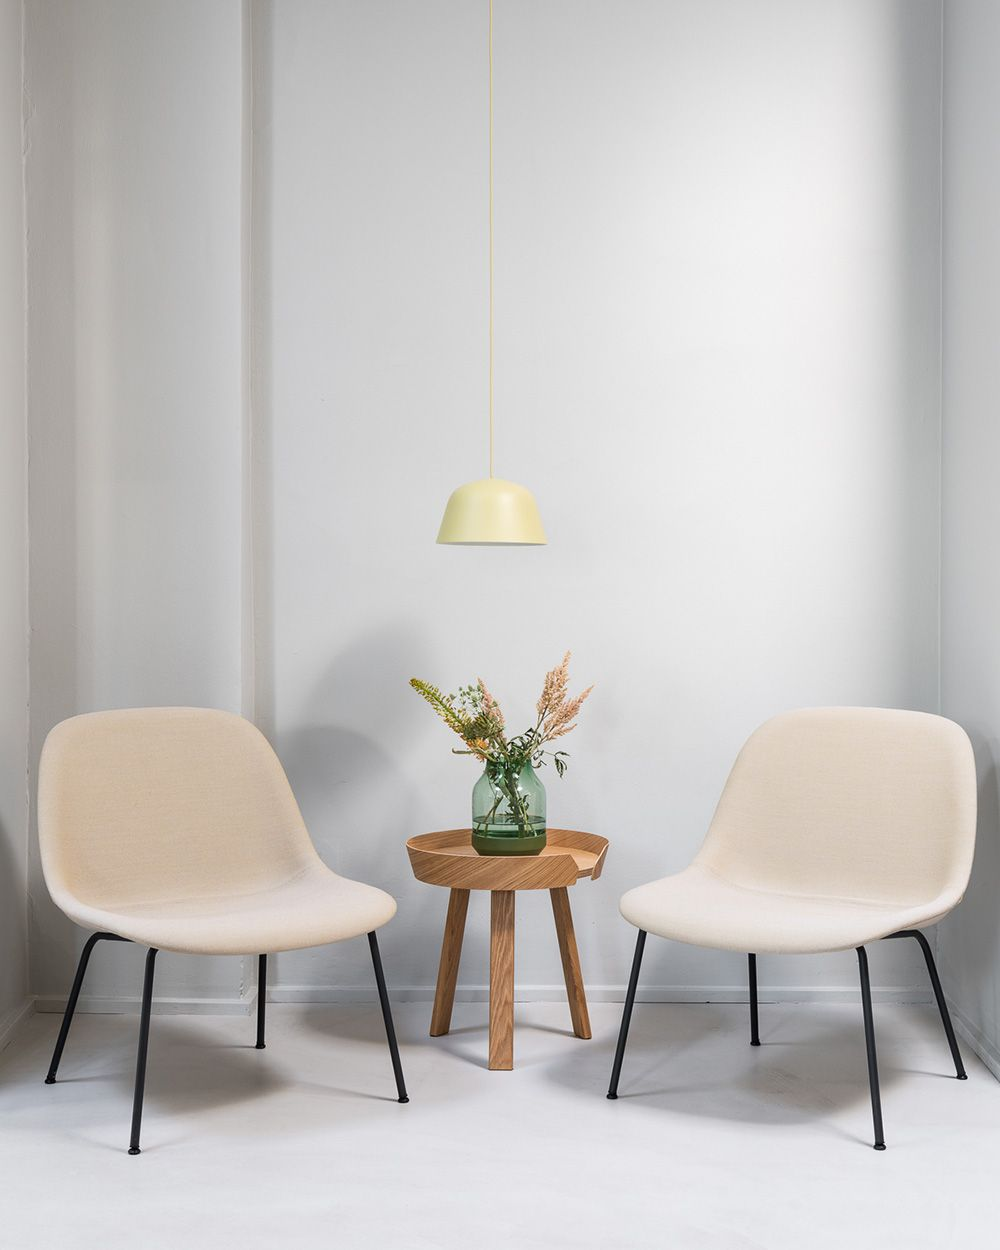 Terrific Home Decor Design Inspiration From Muuto With Extensive Beatyapartments Chair Design Images Beatyapartmentscom